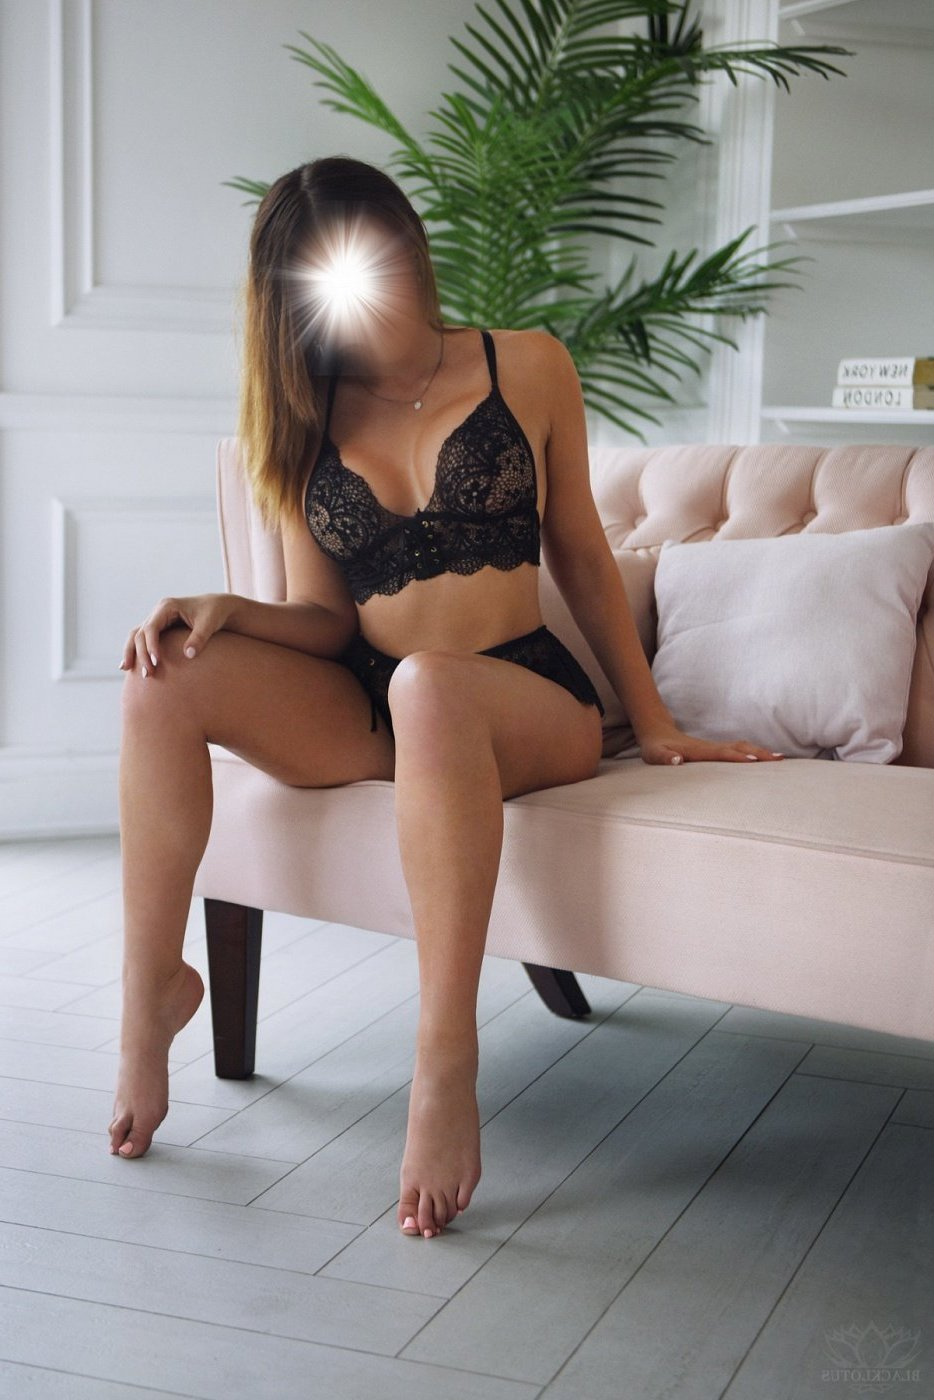 call girl & nuru massage